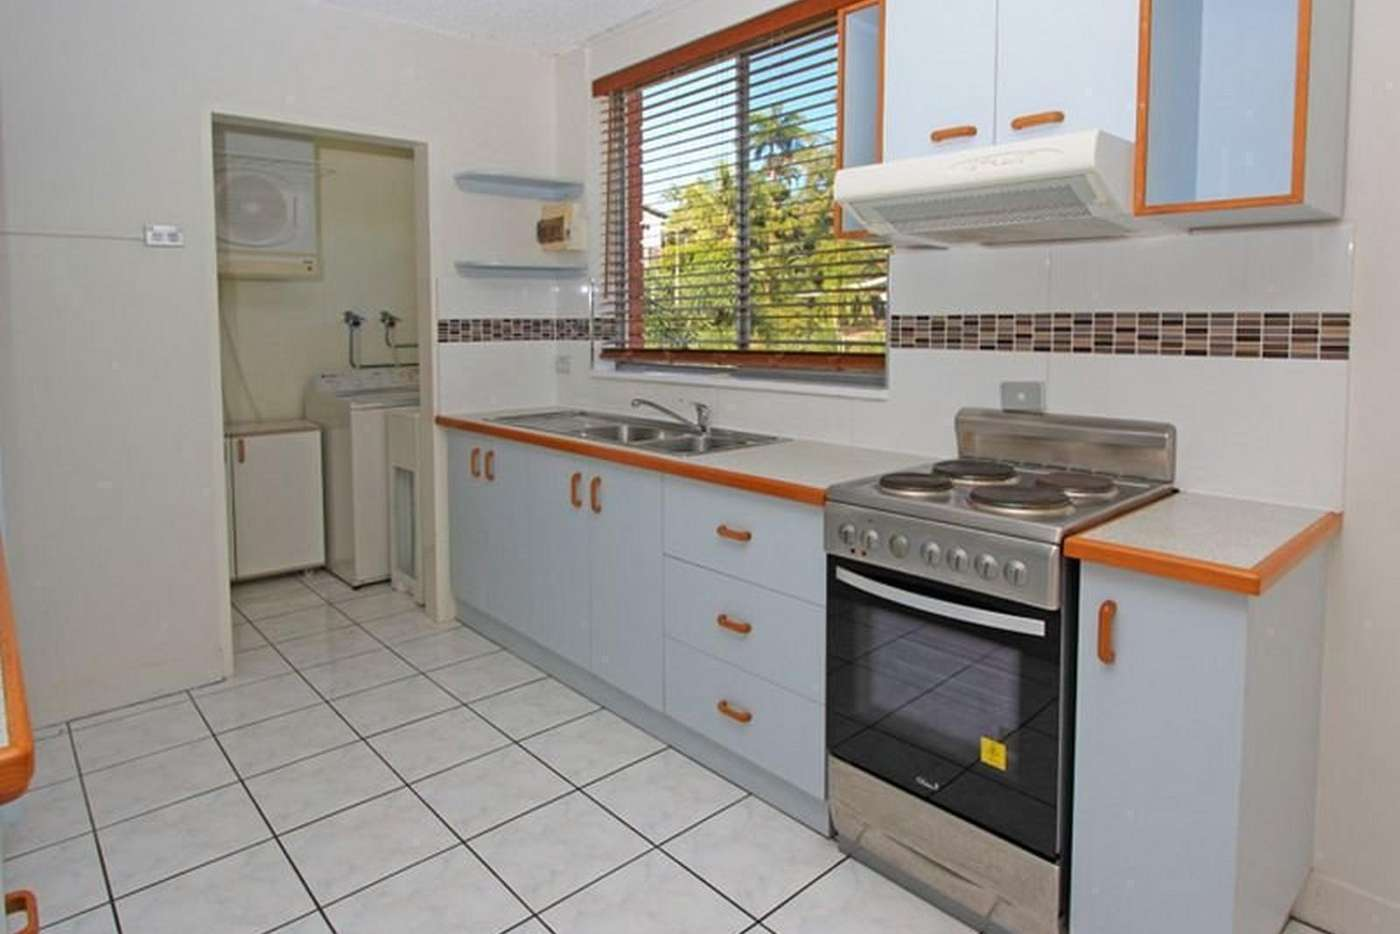 Main view of Homely apartment listing, 9/17 Stanton Terrace, North Ward QLD 4810